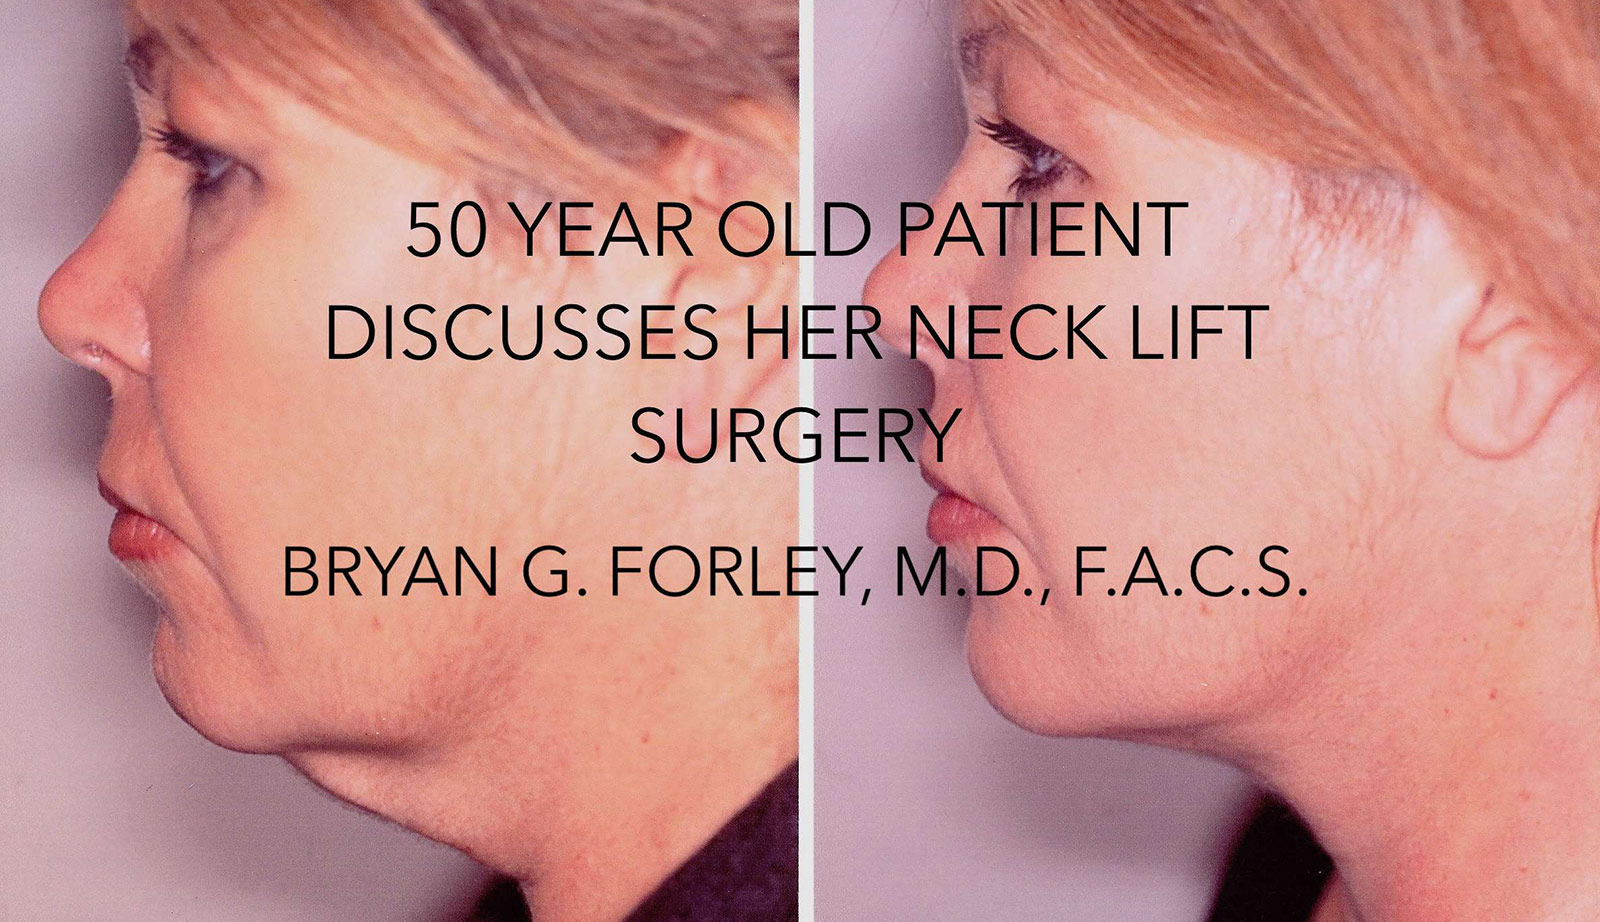 Watch Video: 50 year old patient discusses her neck lift surgery, Bryan G.Forley